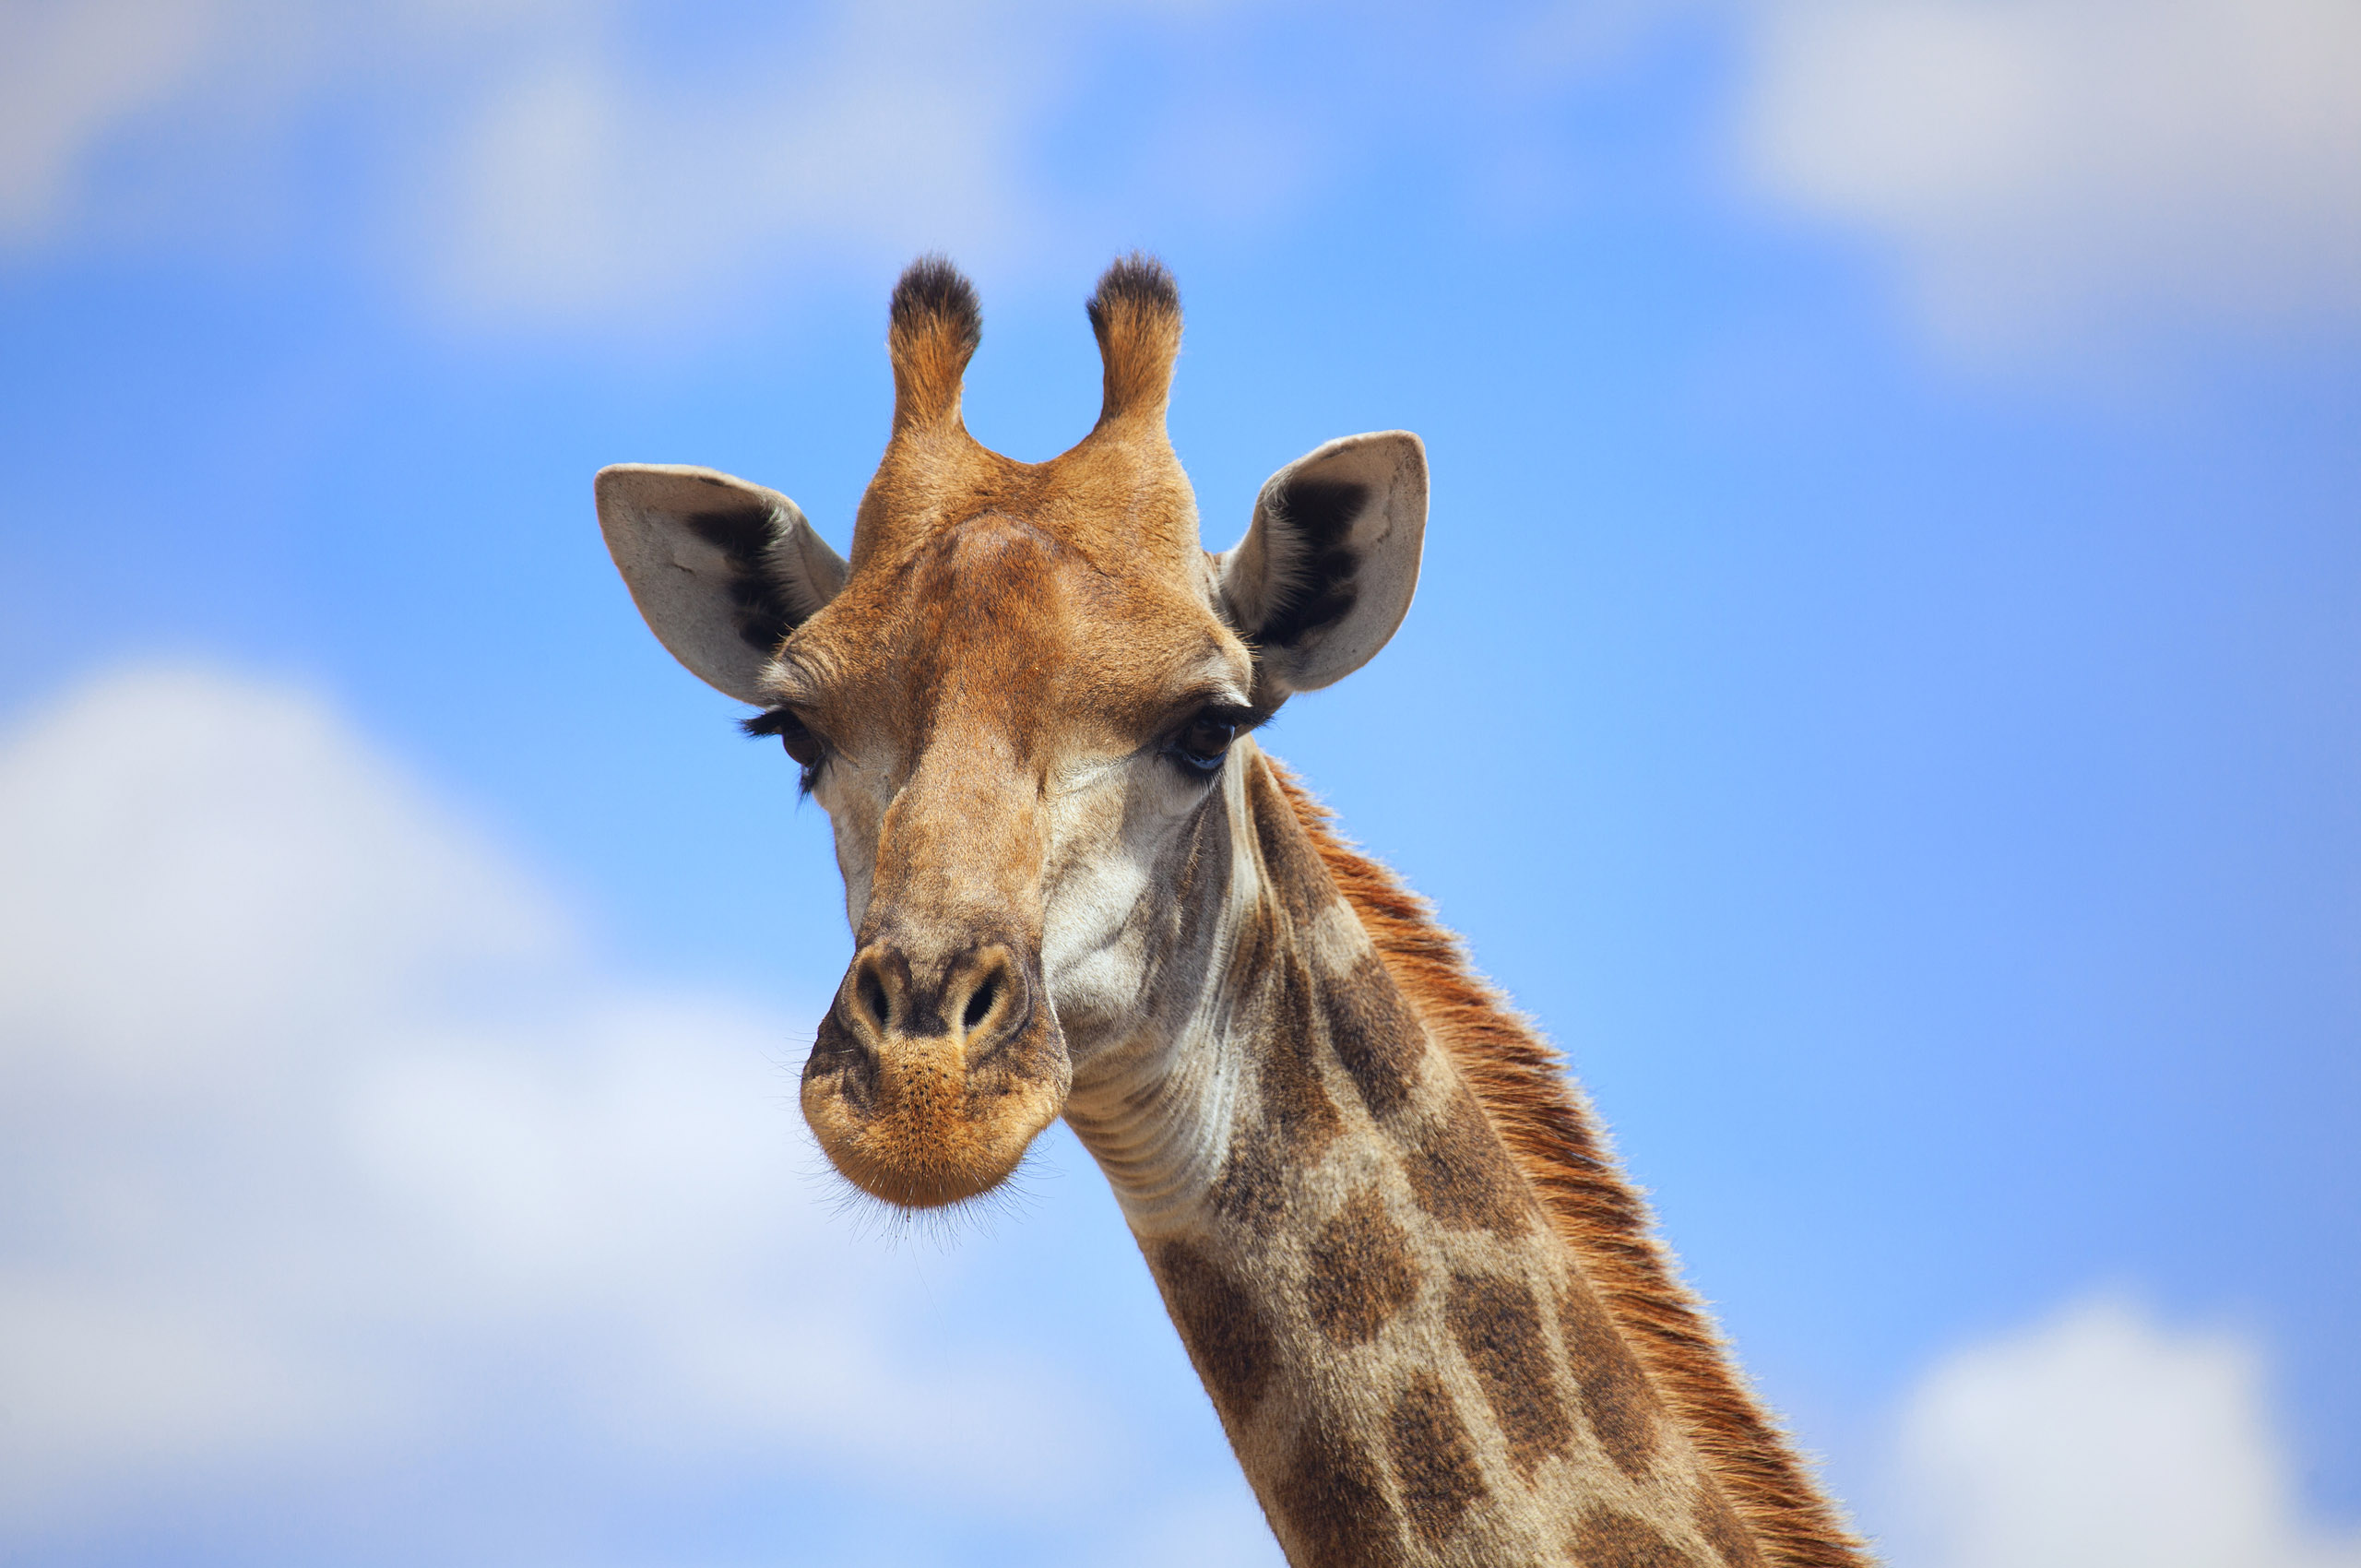 giraffe wallpapers hd pictures - photo #17